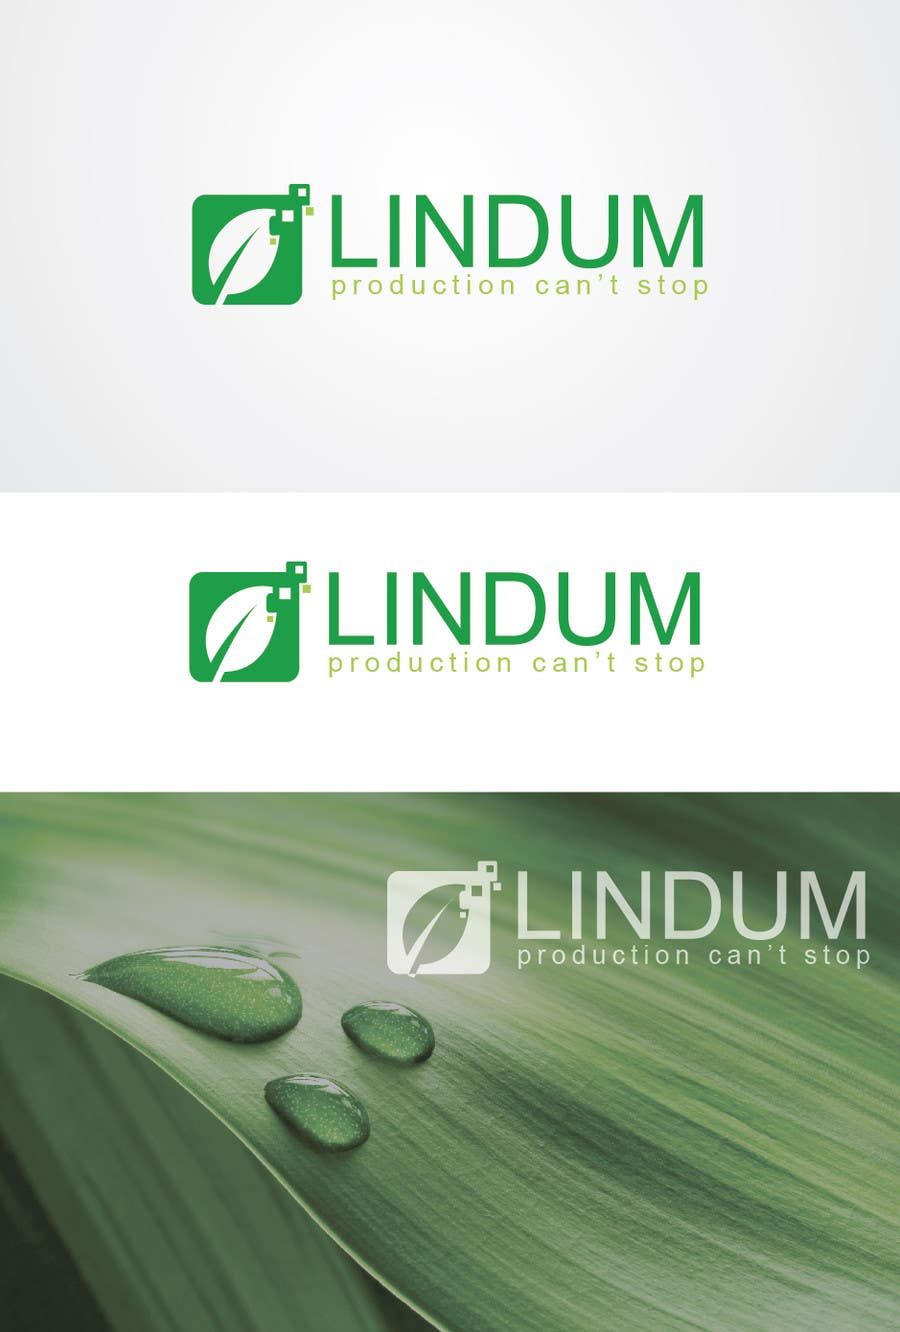 Konkurrenceindlæg #179 for Come up with a new brand image for Lindum Packaging